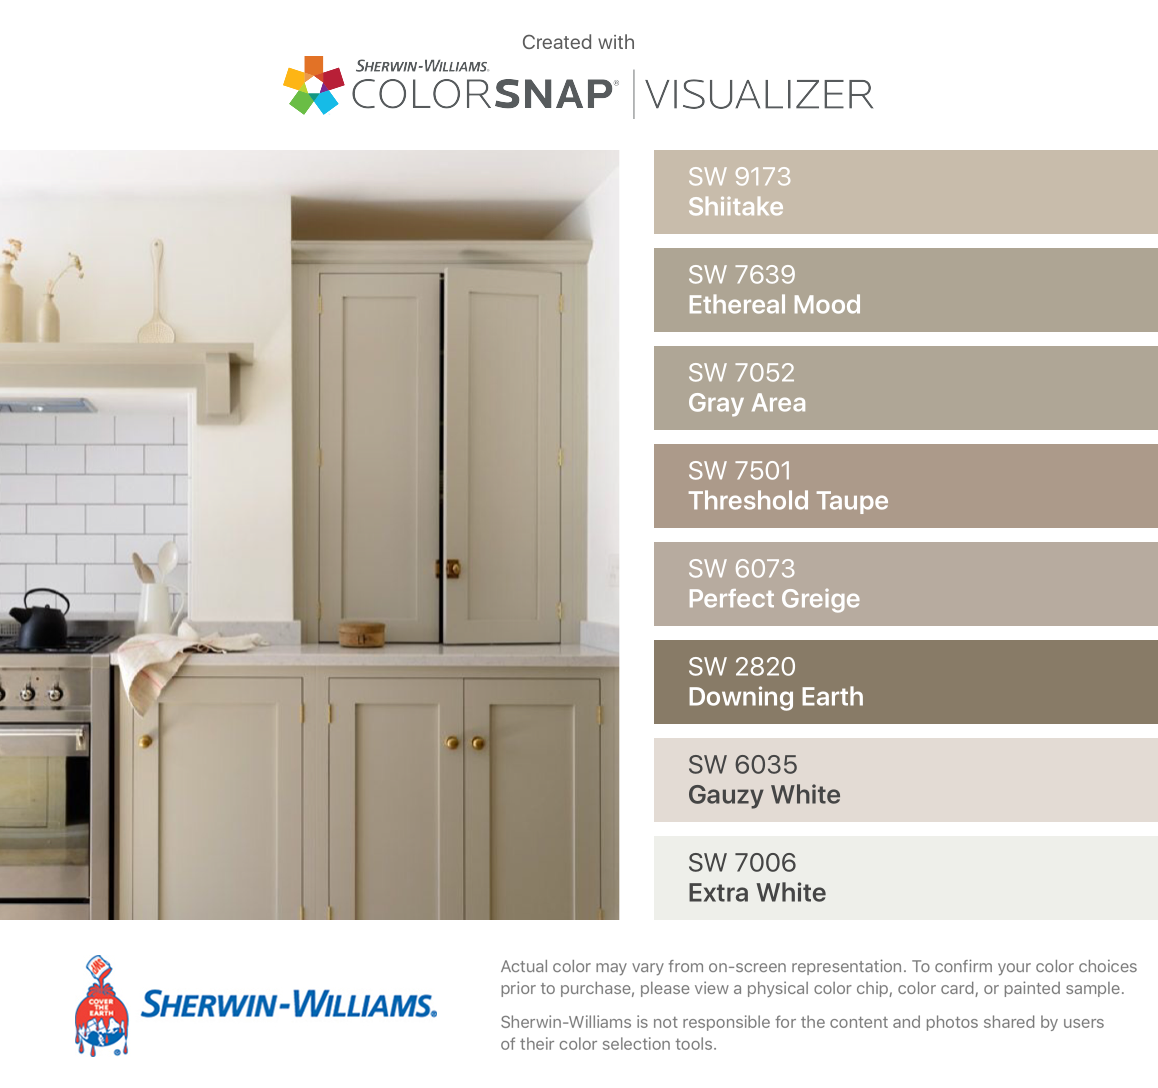 For IPhone By Sherwin Williams Shiitake SW 9173 Ethereal Mood 7639 Gray Area 7052 Threshold Taupe 7501 Perfect Greige 6073